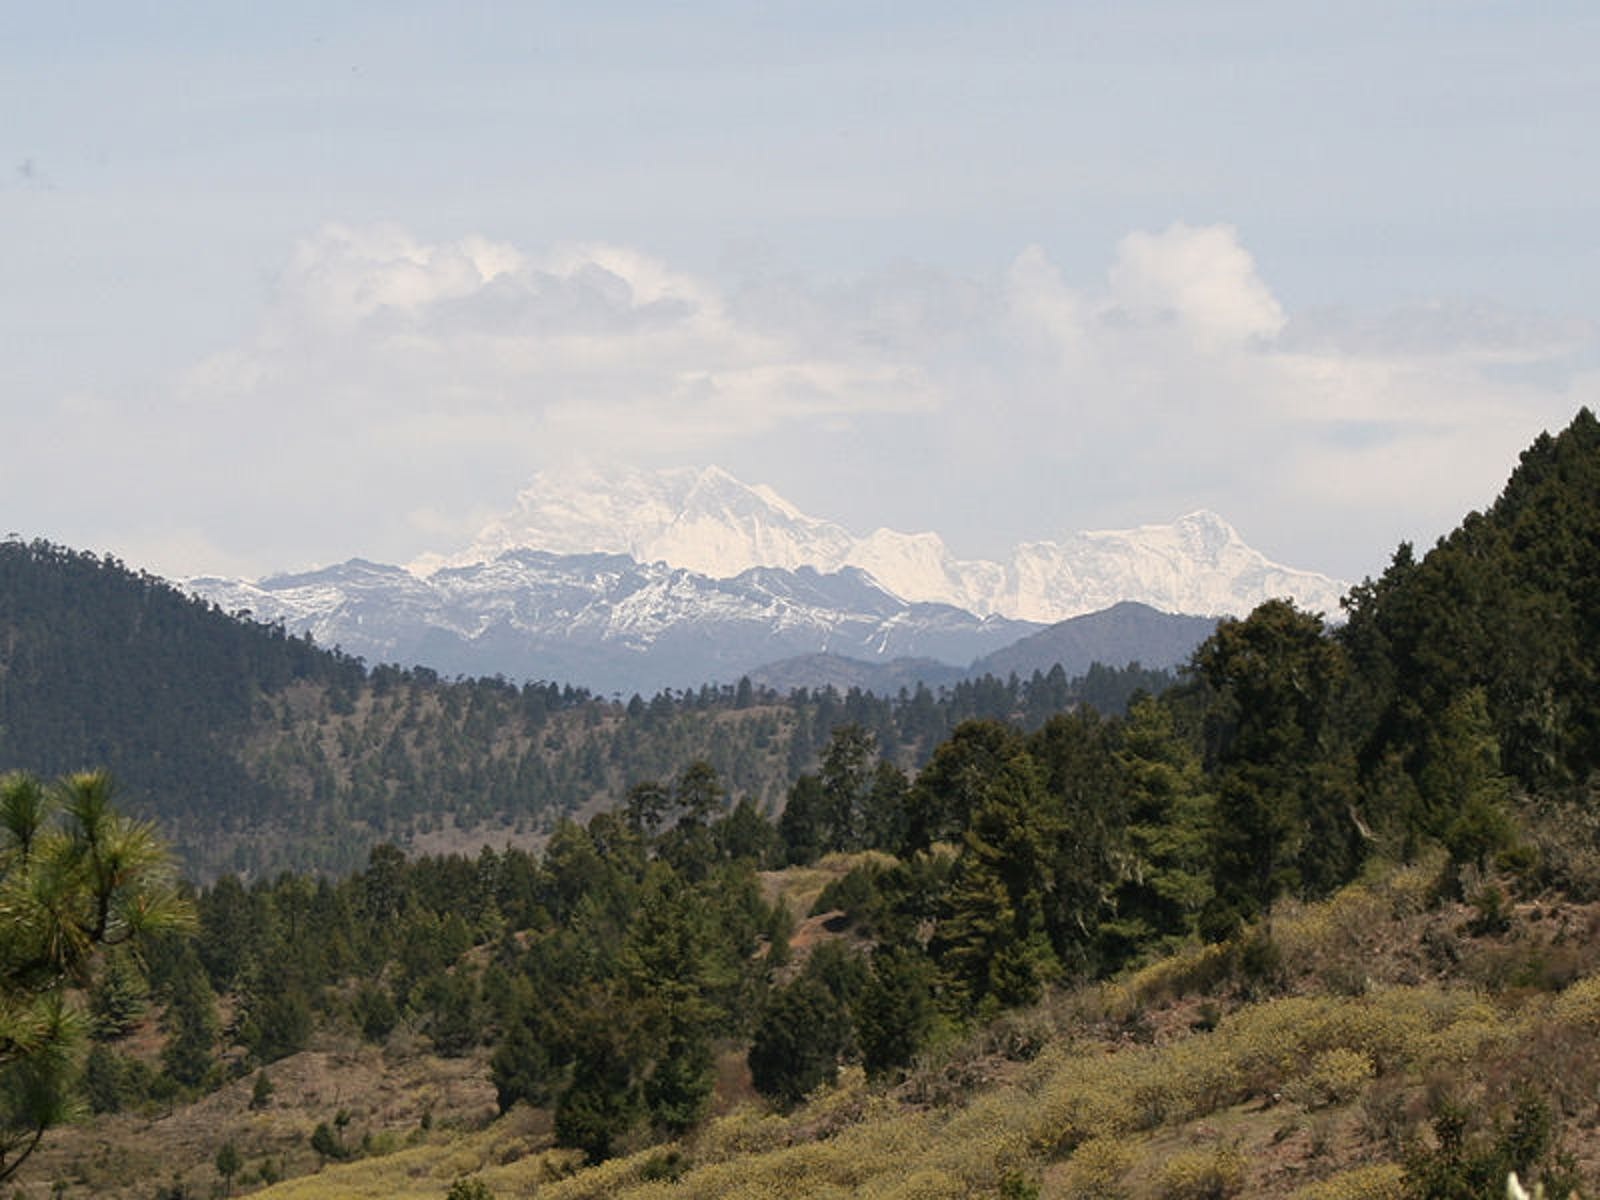 Eastern Himalayan Subalpine Conifer Forests